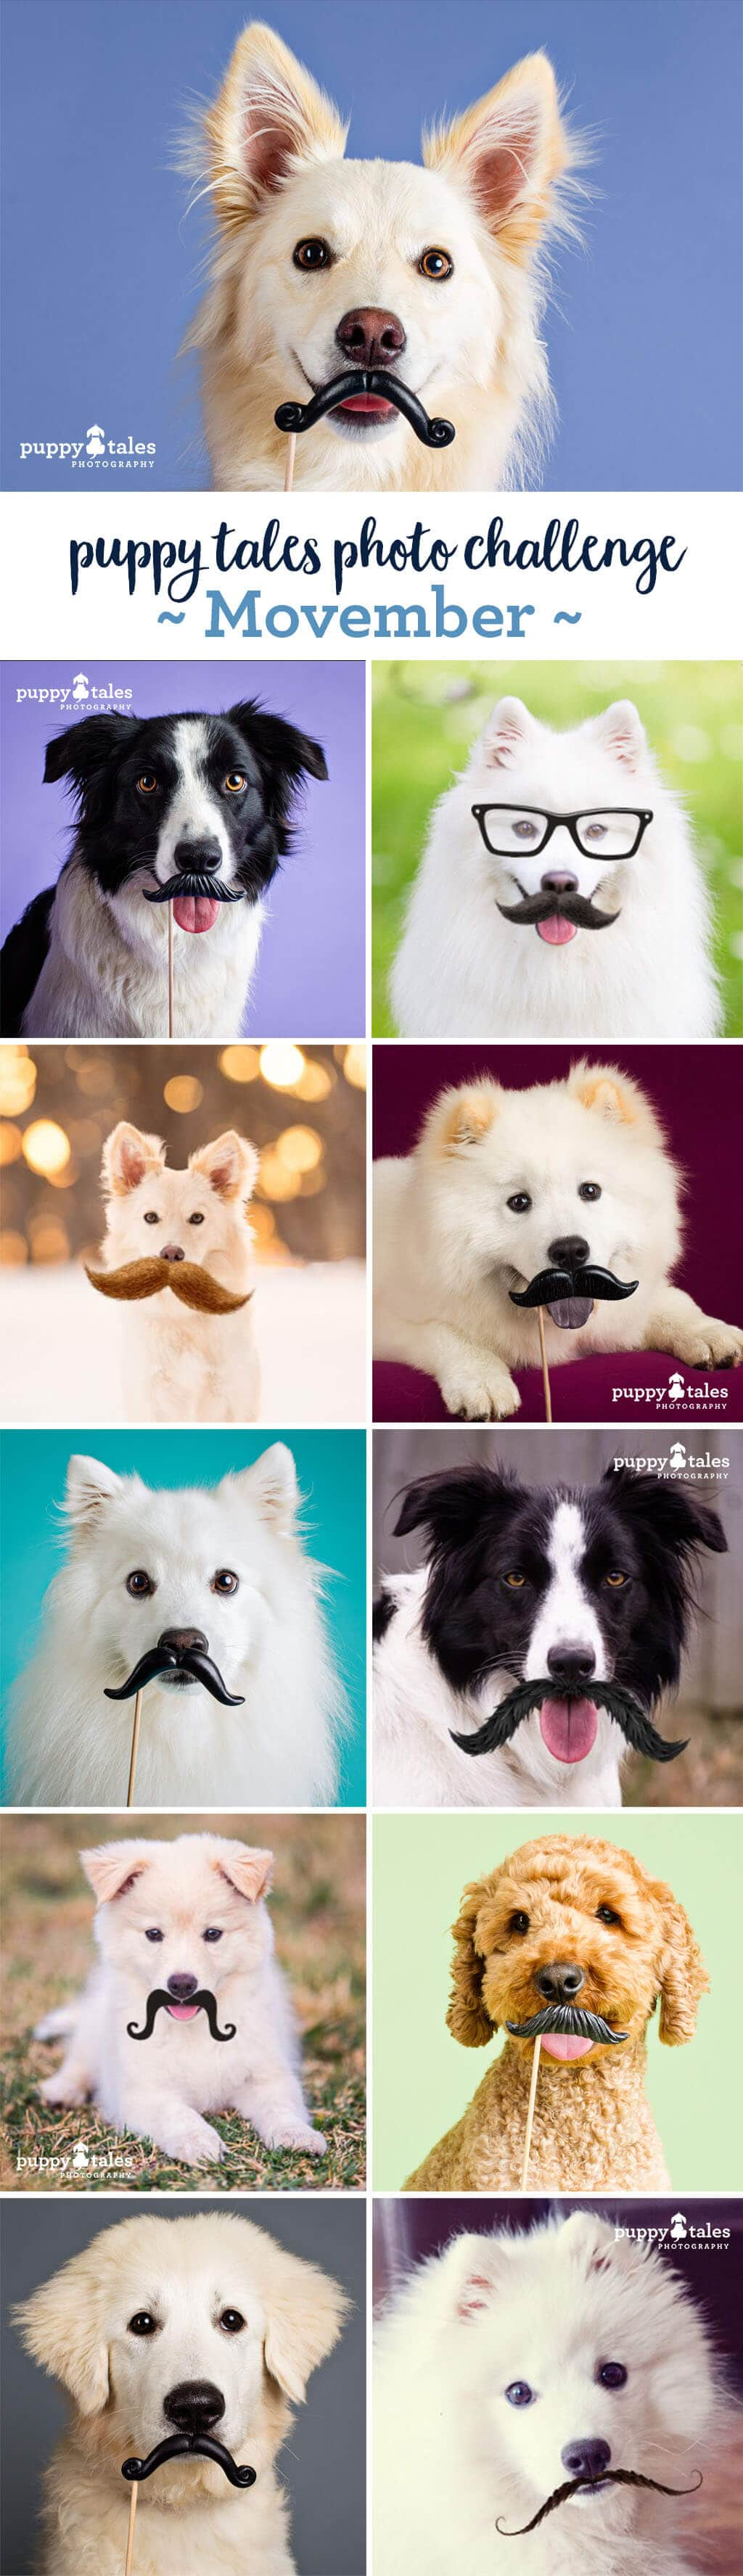 Puppy Tales Photo Challenge ~ Movember